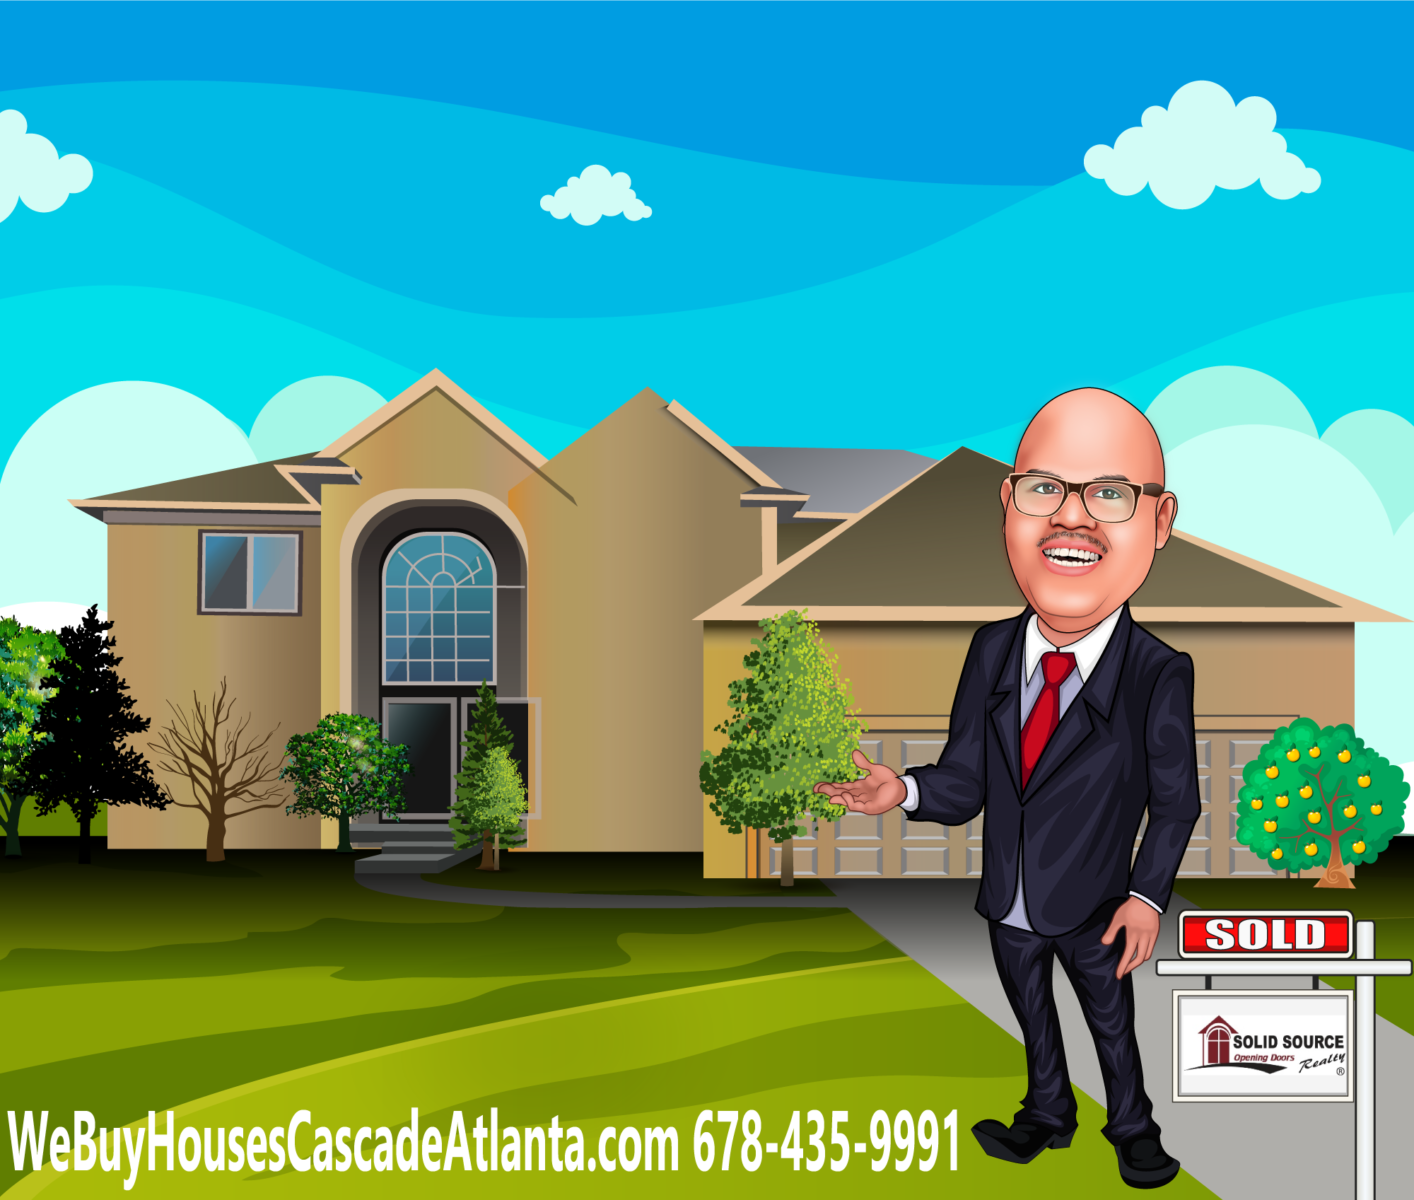 We Buy Houses Cascade Atlanta 30310, 30311, 30318 logo